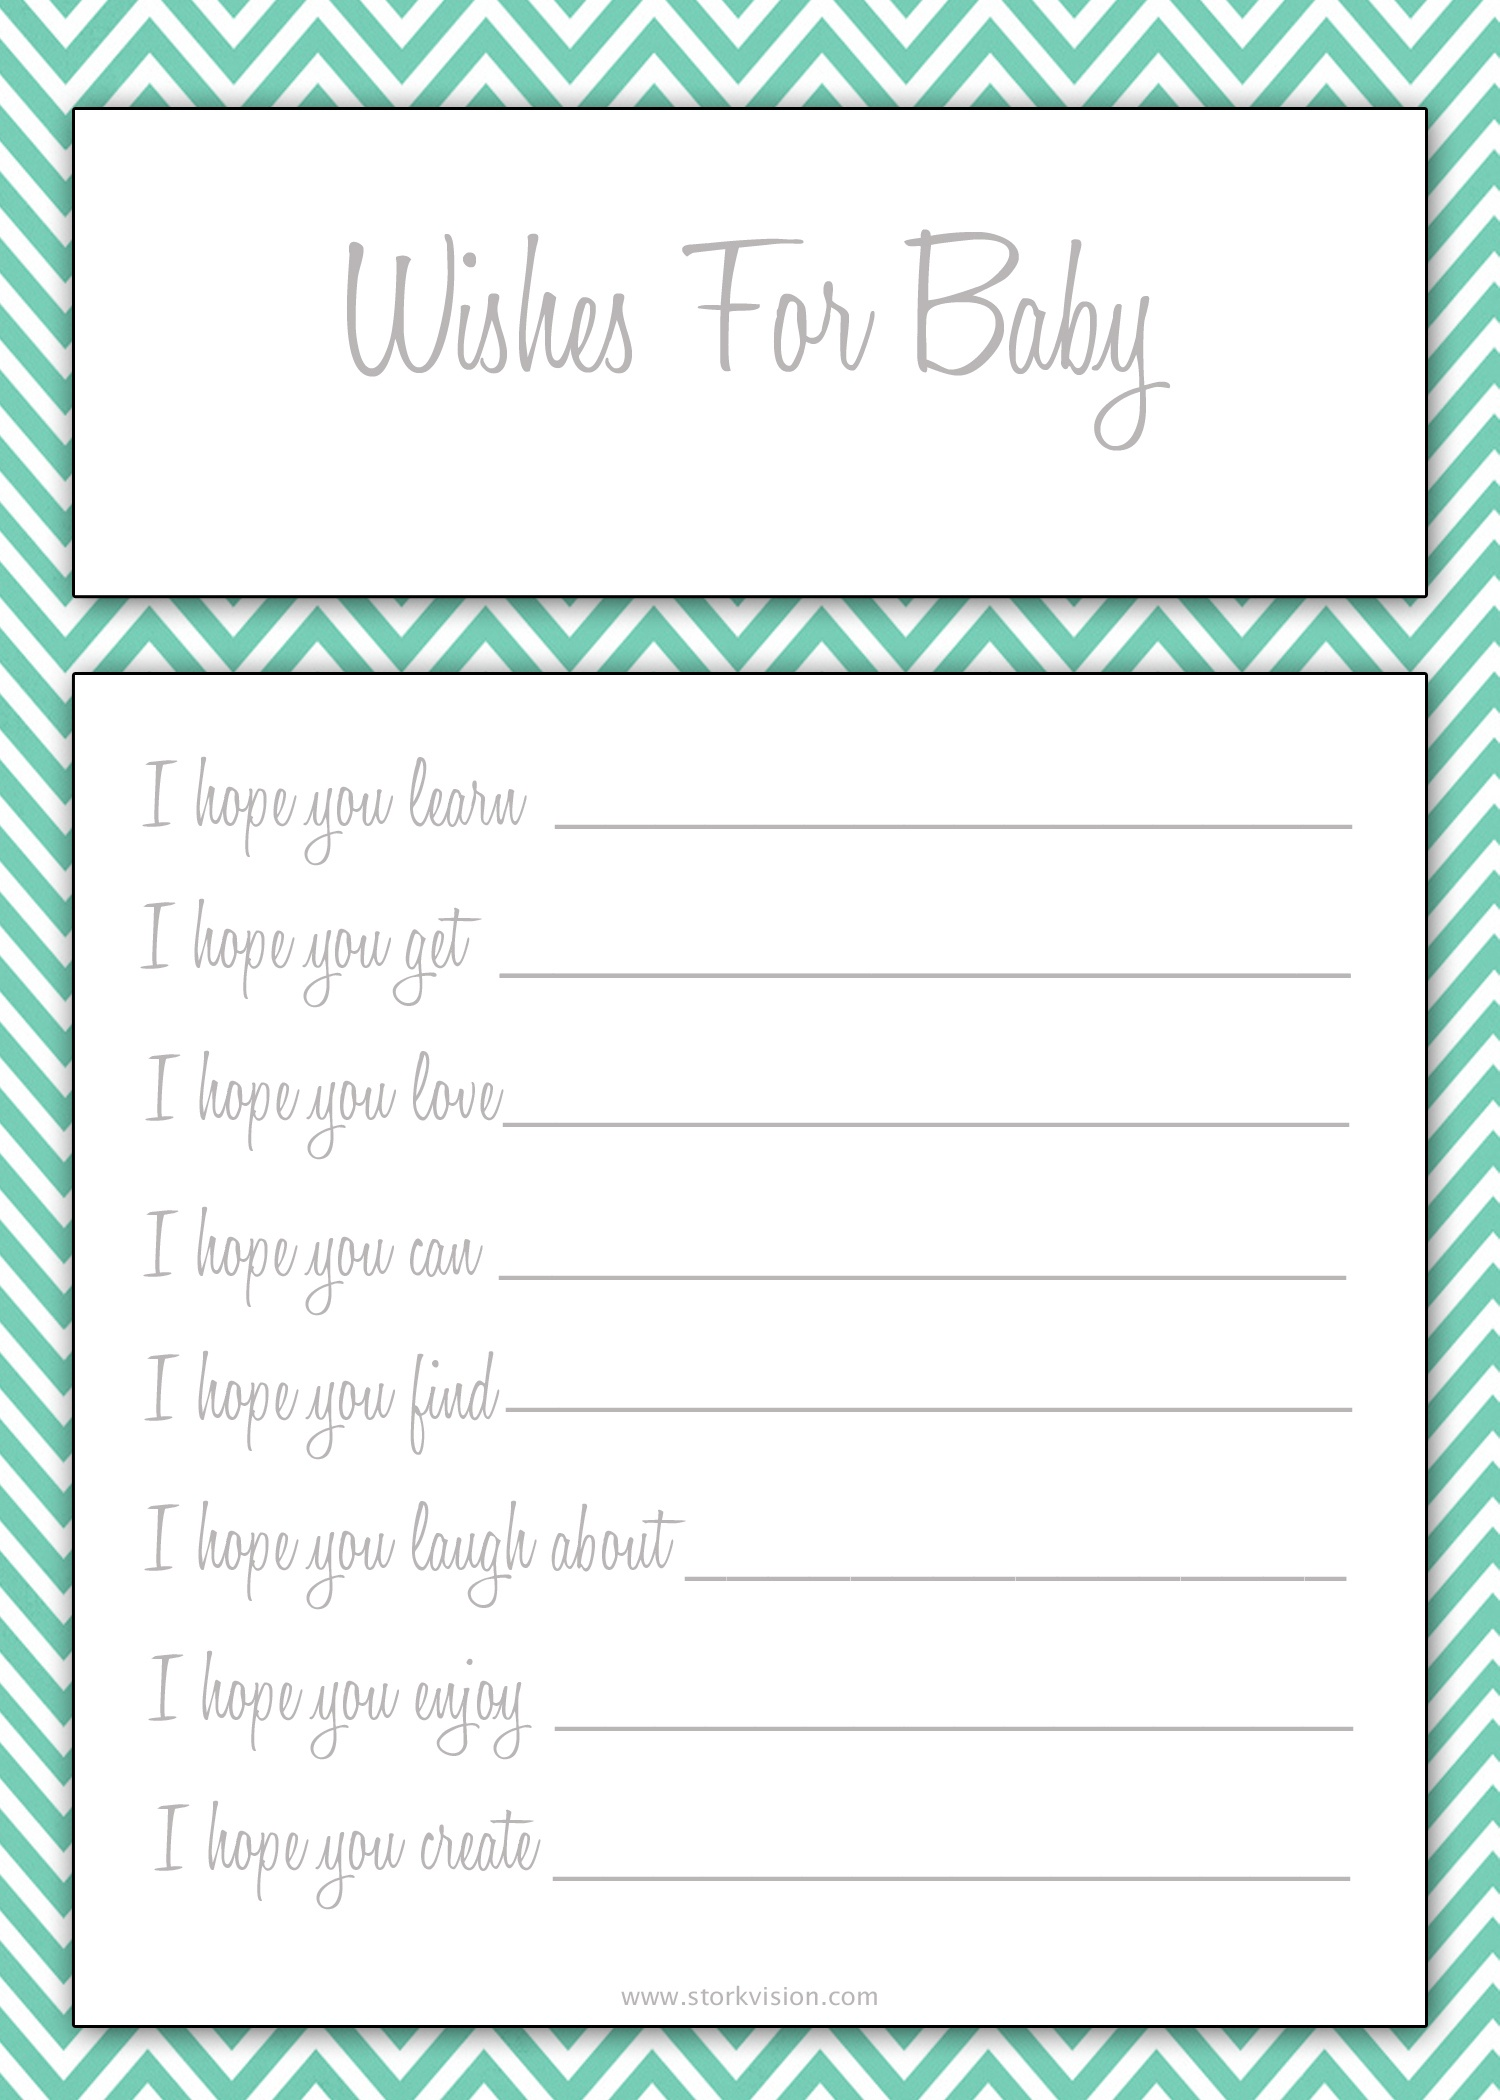 Photo : Free Baby Shower Printable Image - Free Printable Baby Shower Games For Twins